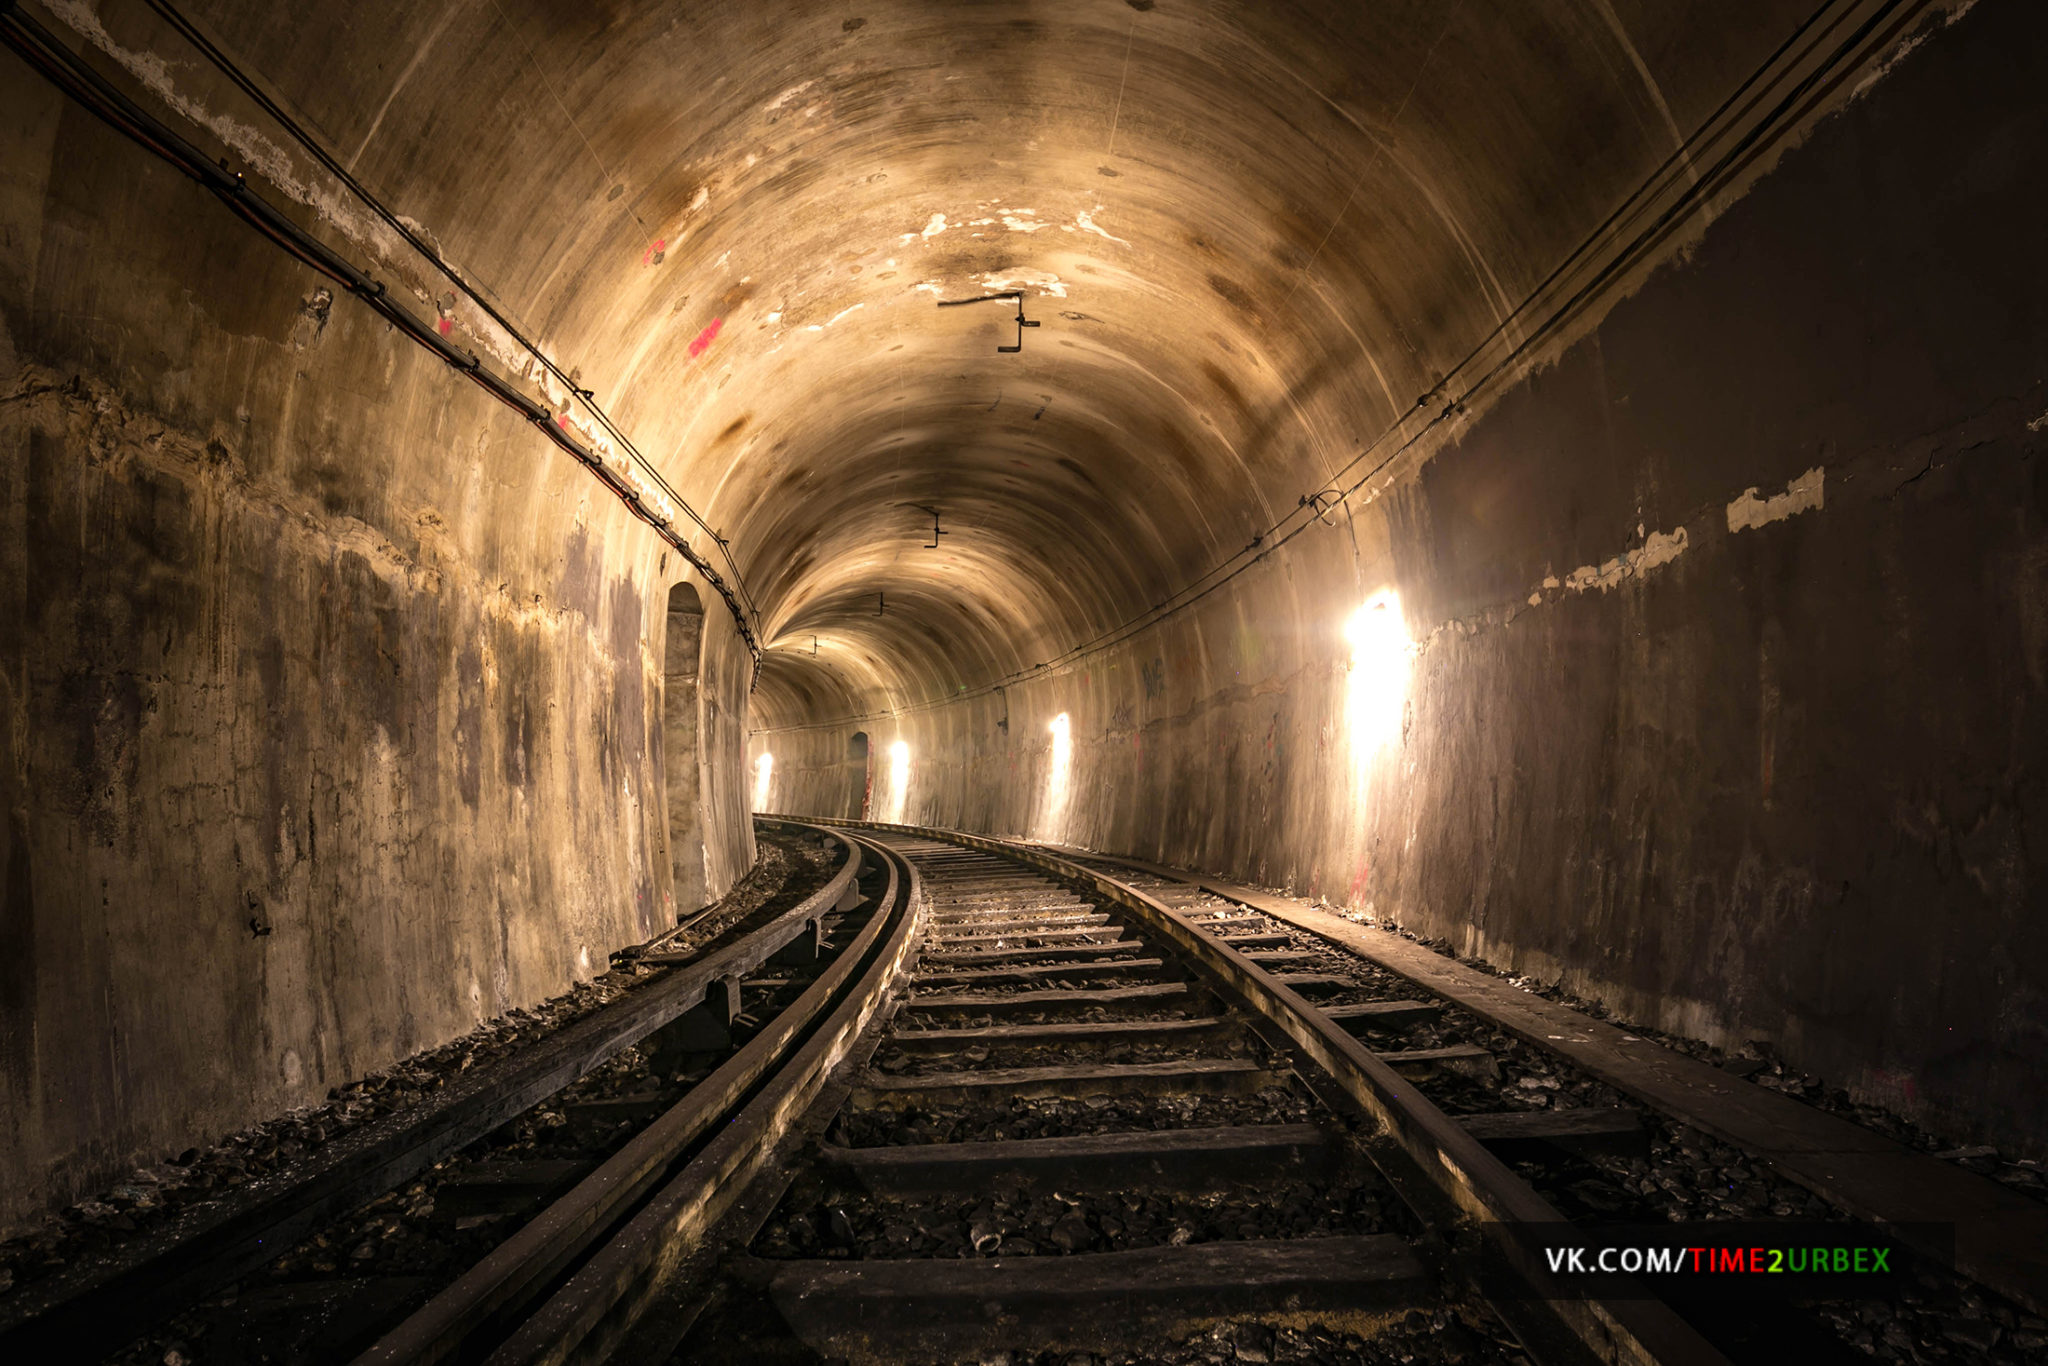 57-1 7 GHOST STATIONS OF THE PARIS METRO AND HOW TO GET INTO THE ILLEGALLY + UNUSUAL TUNNELS + RER